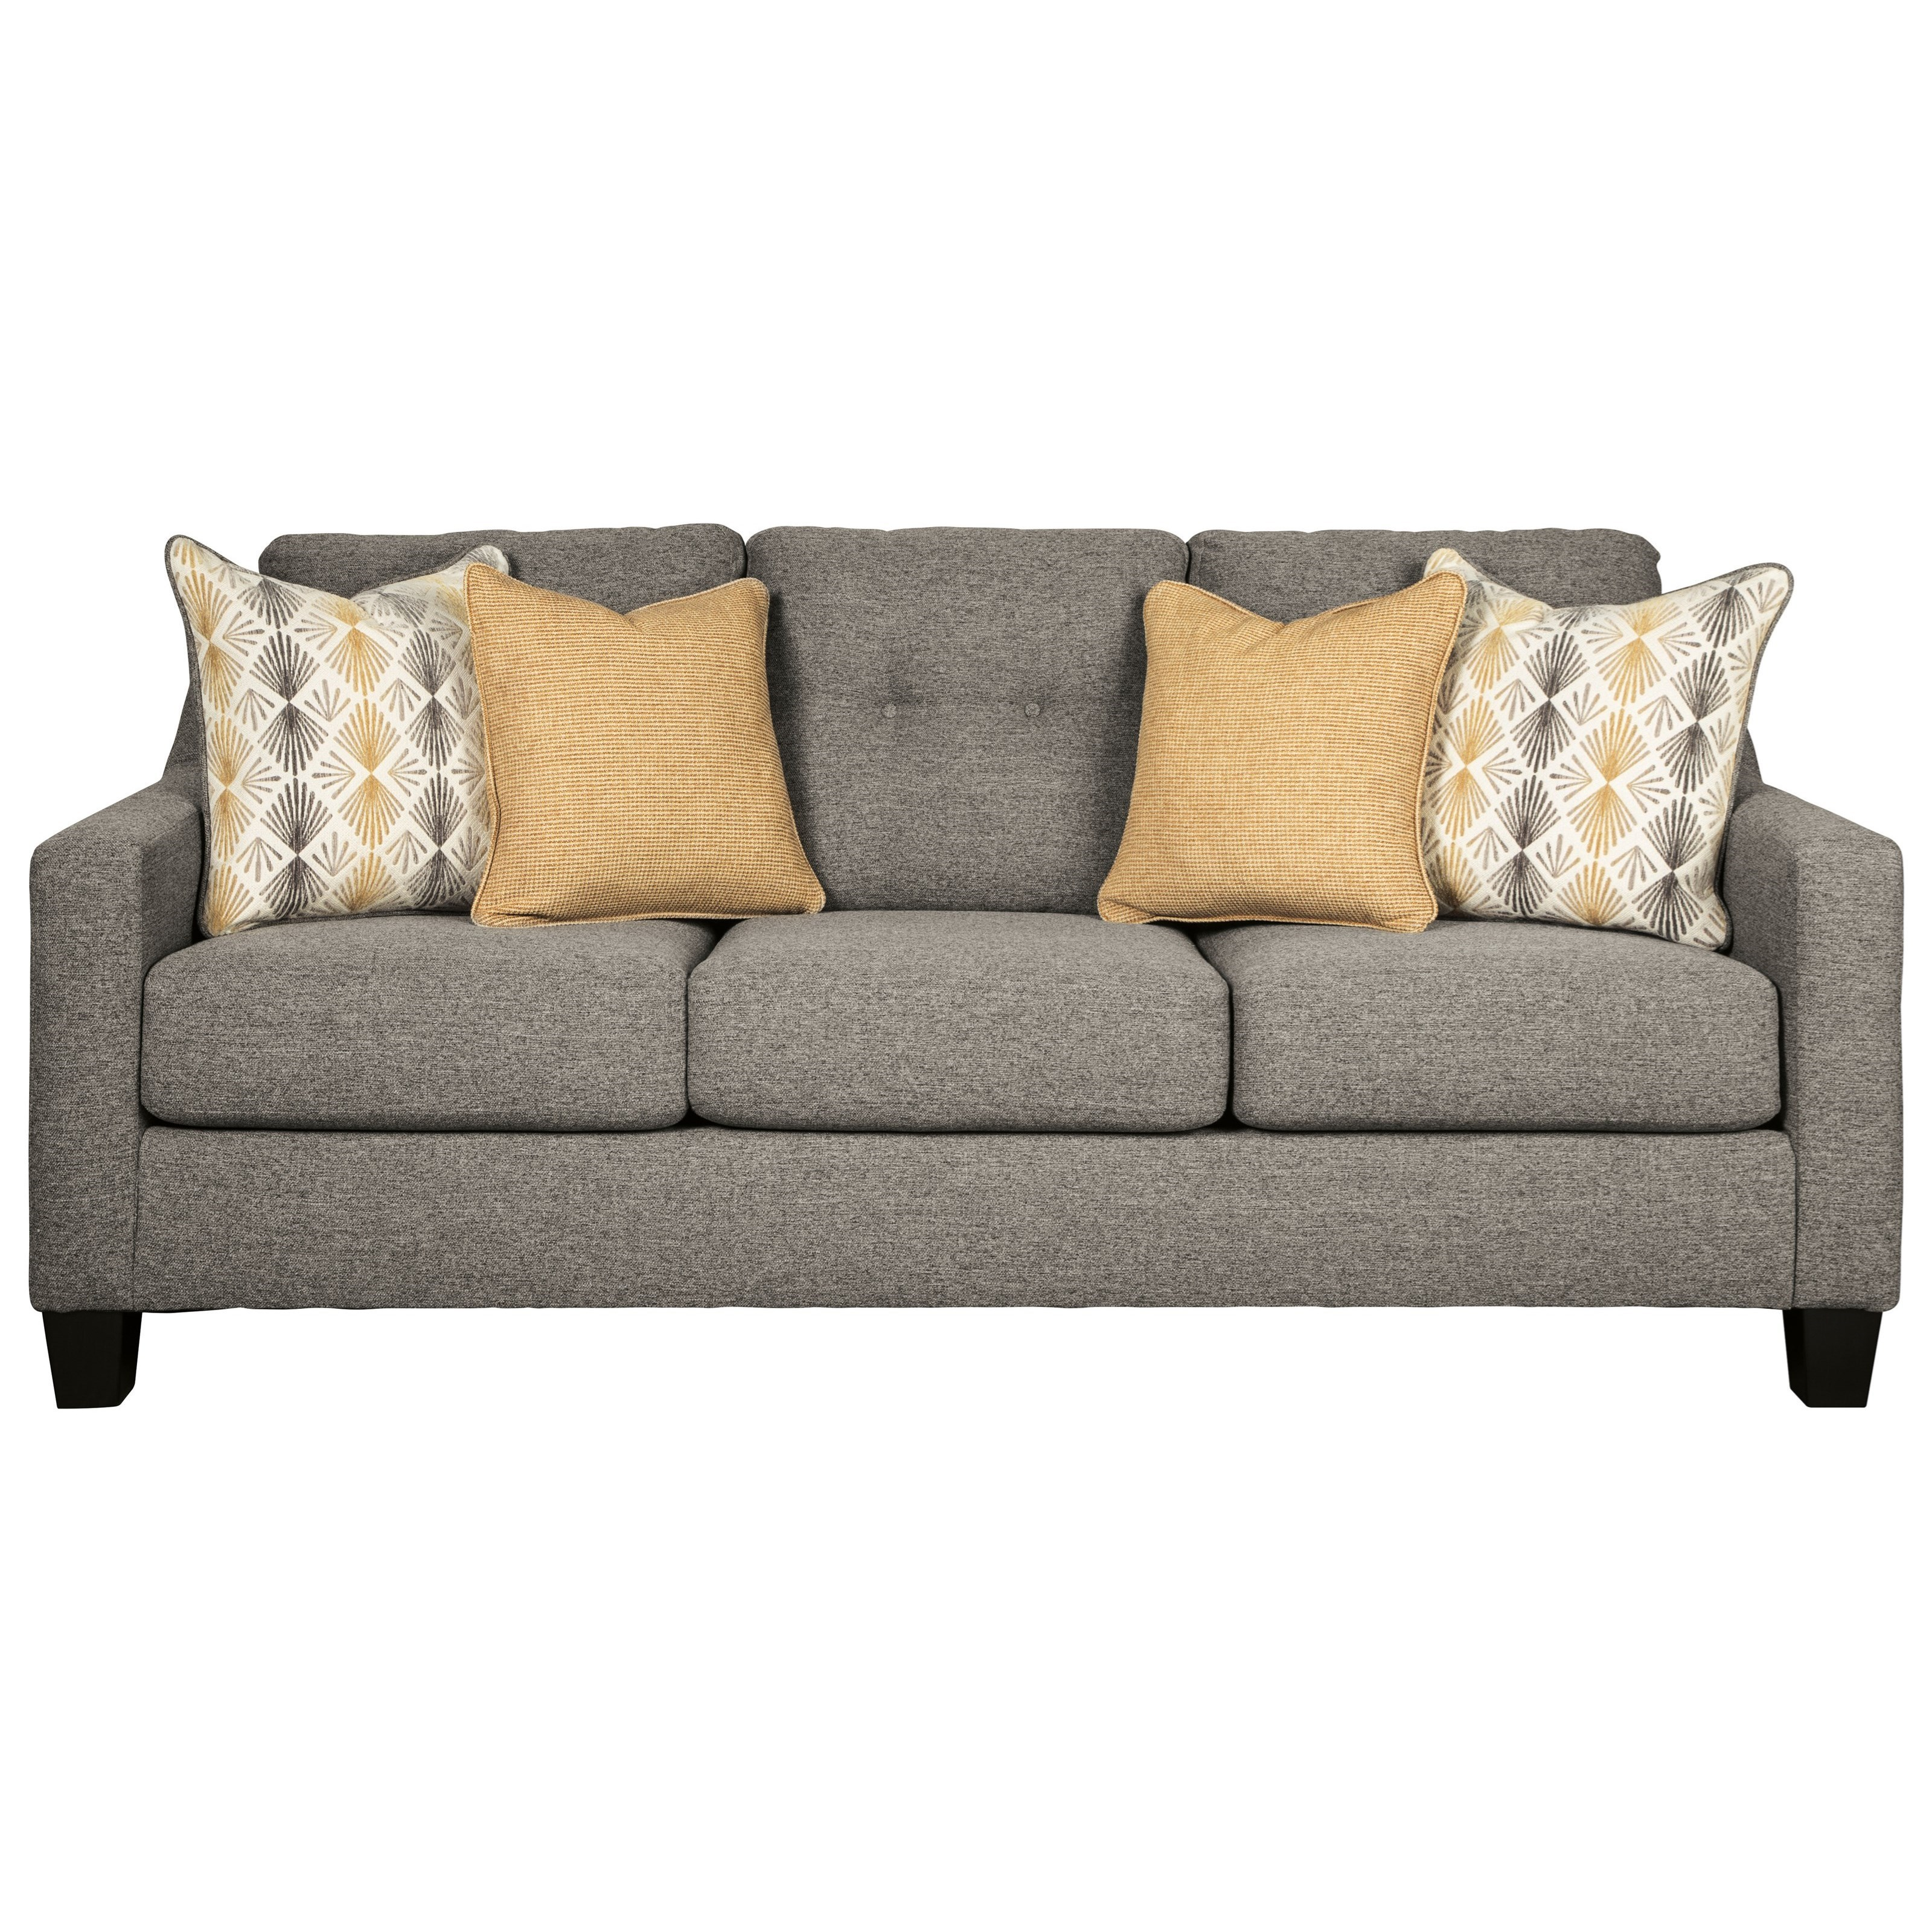 Benchcraft Daylon Contemporary Sofa With Tufted Back